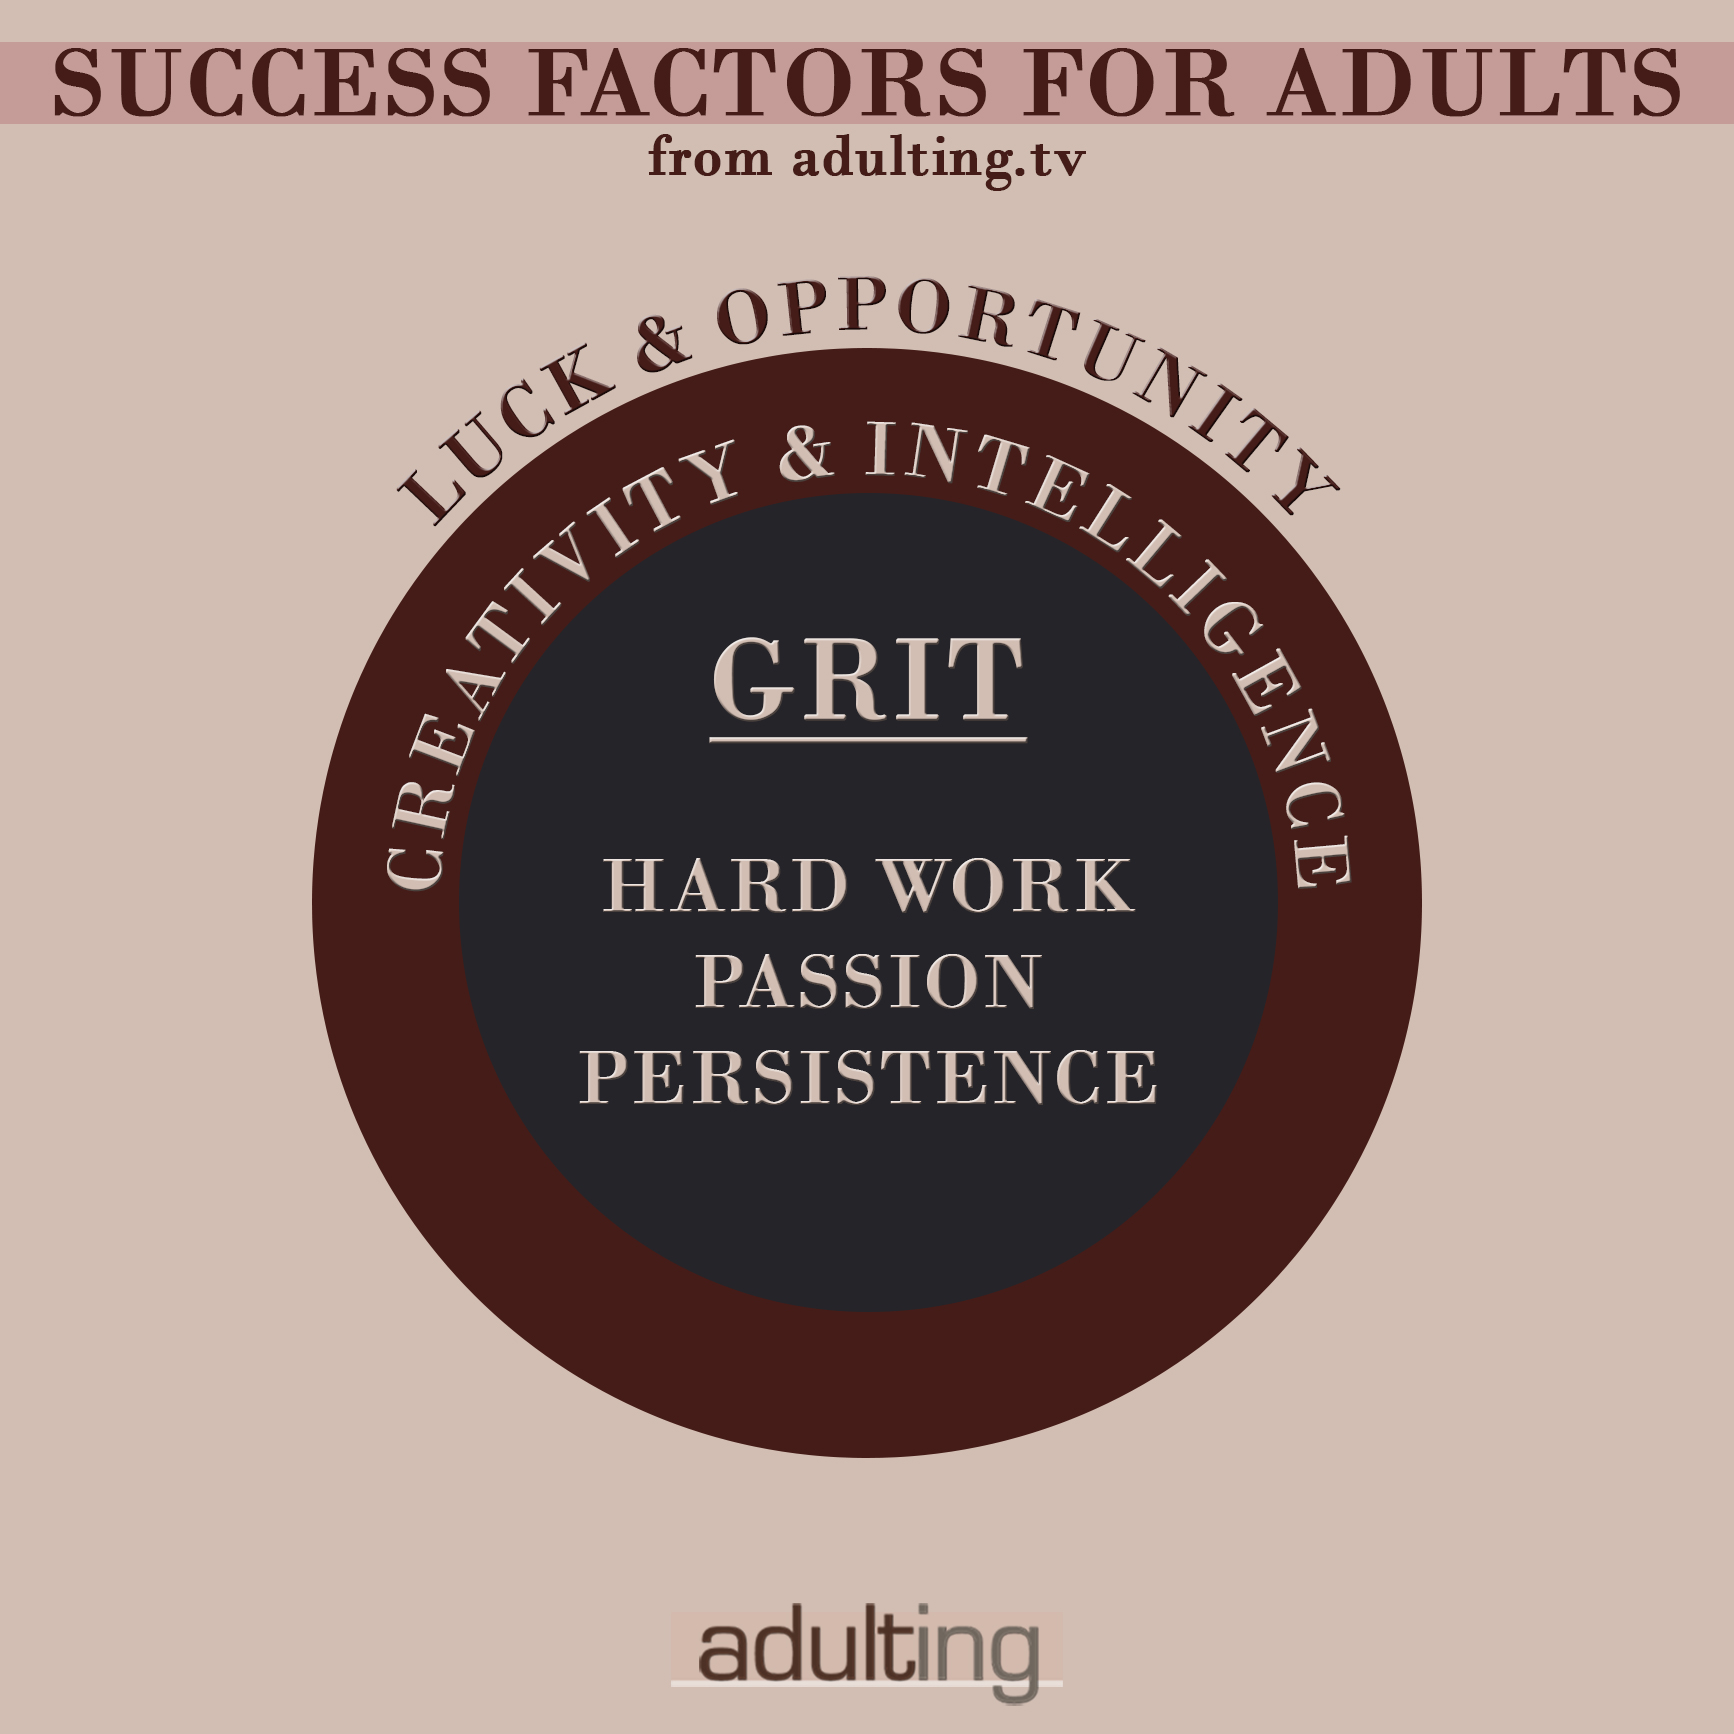 Grit: The Most Important Factor for Success